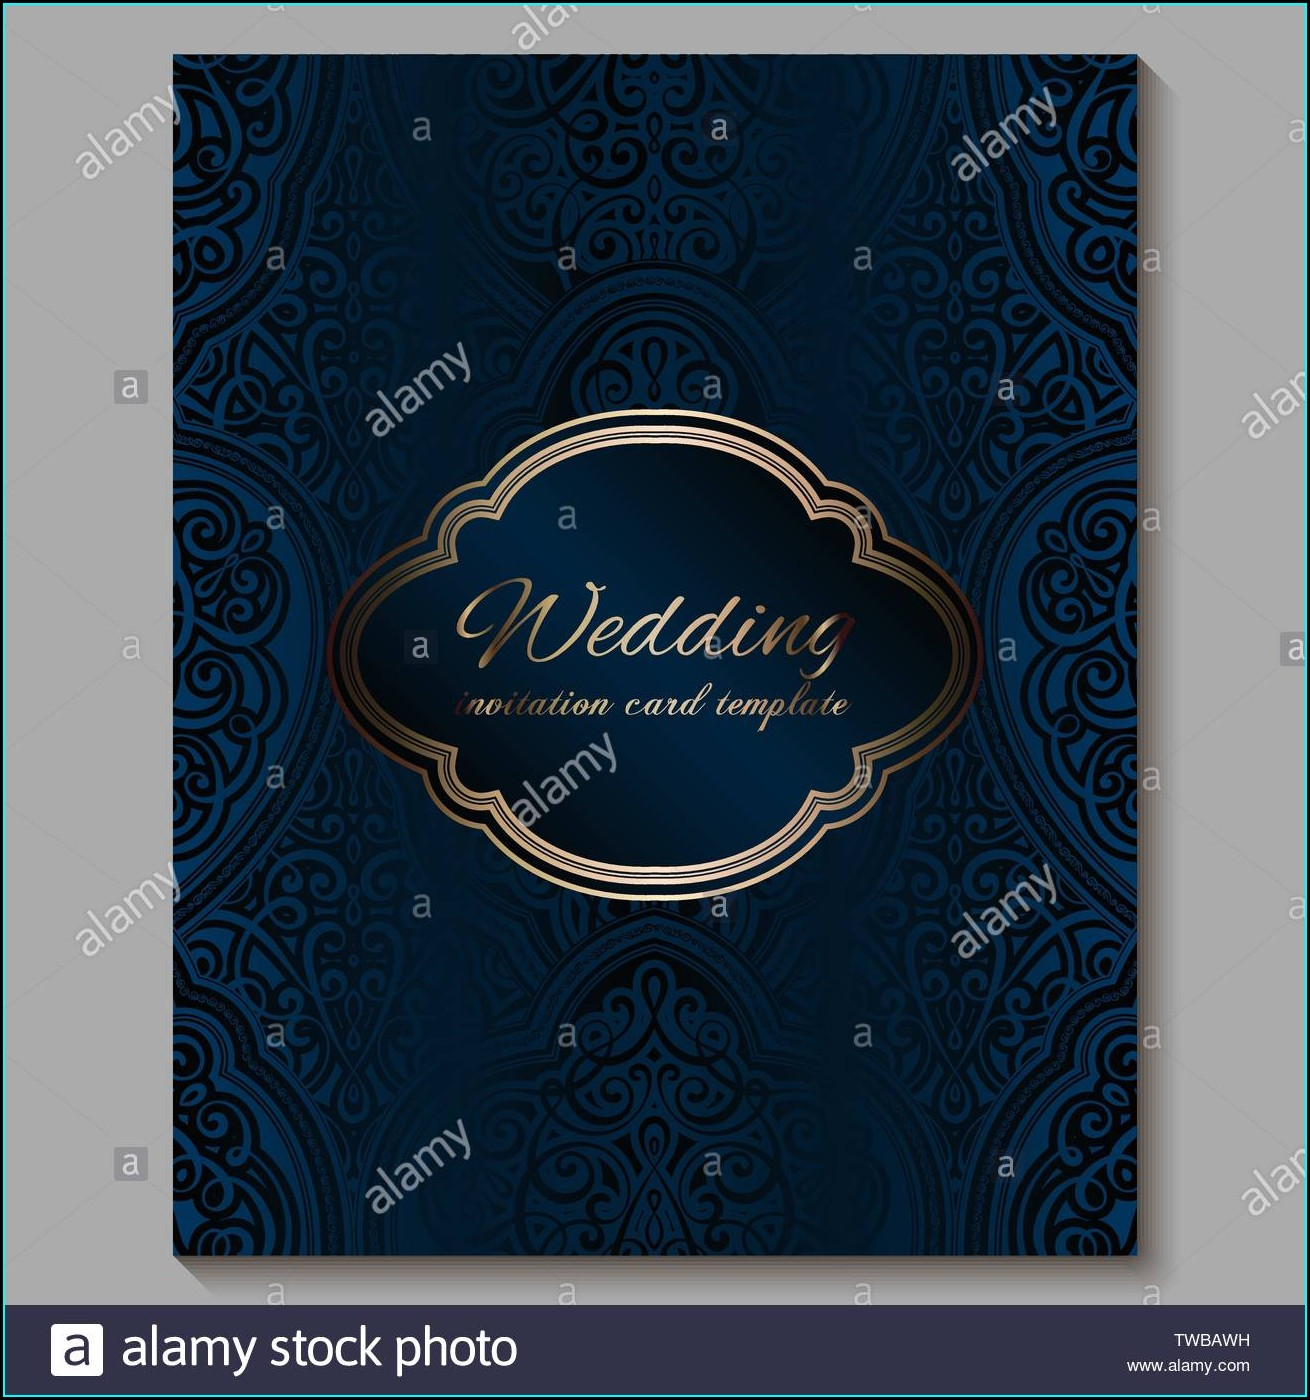 Wedding Invitation Card Royal Blue Background Design